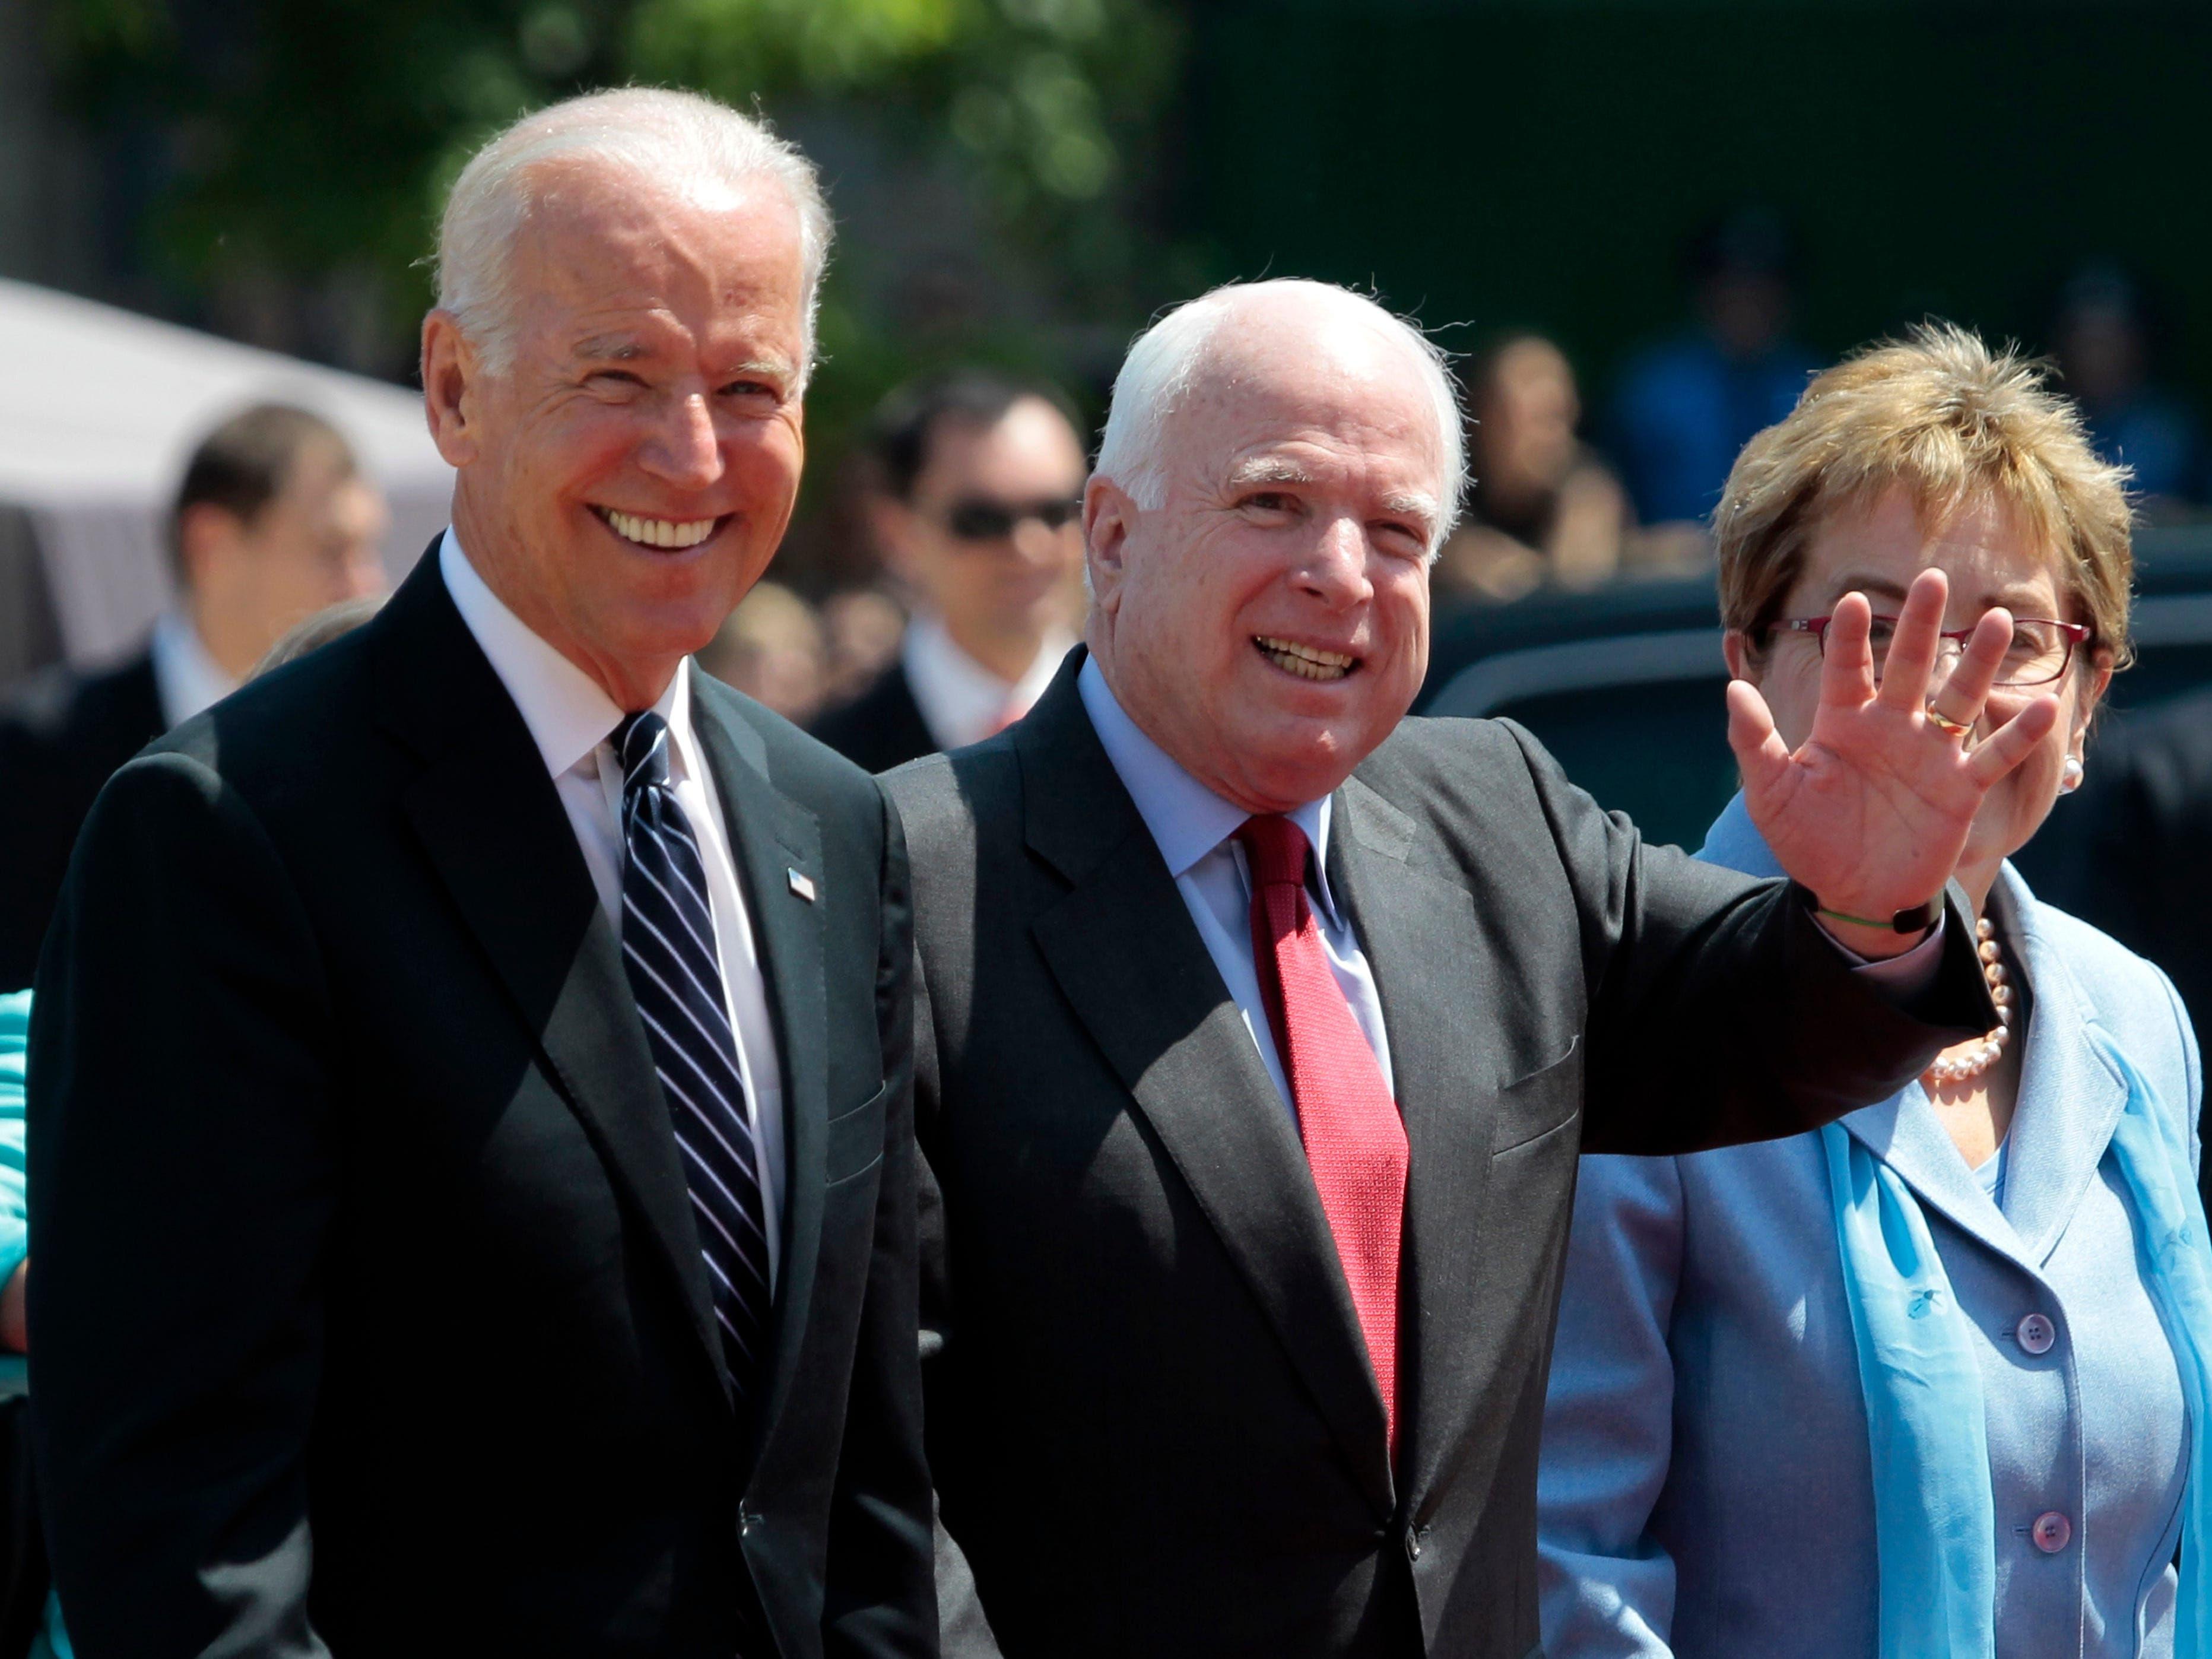 From left, U.S. Vice President Joe Biden, U.S. Sen. John McCain, R-Ariz., and Rep. Marcy Kaptur, D-Ohio, attend the inauguration ceremony of Ukraine's new President Petro Poroshenko in Kiev, Ukraine, Saturday, June 7, 2014. Petro Poroshenko took the oath of office as Ukraineís president Saturday, assuming leadership of a country mired in a violent uprising and economic troubles.  (AP Photo/Sergei Chuzavkov) ORG XMIT: MOSB120